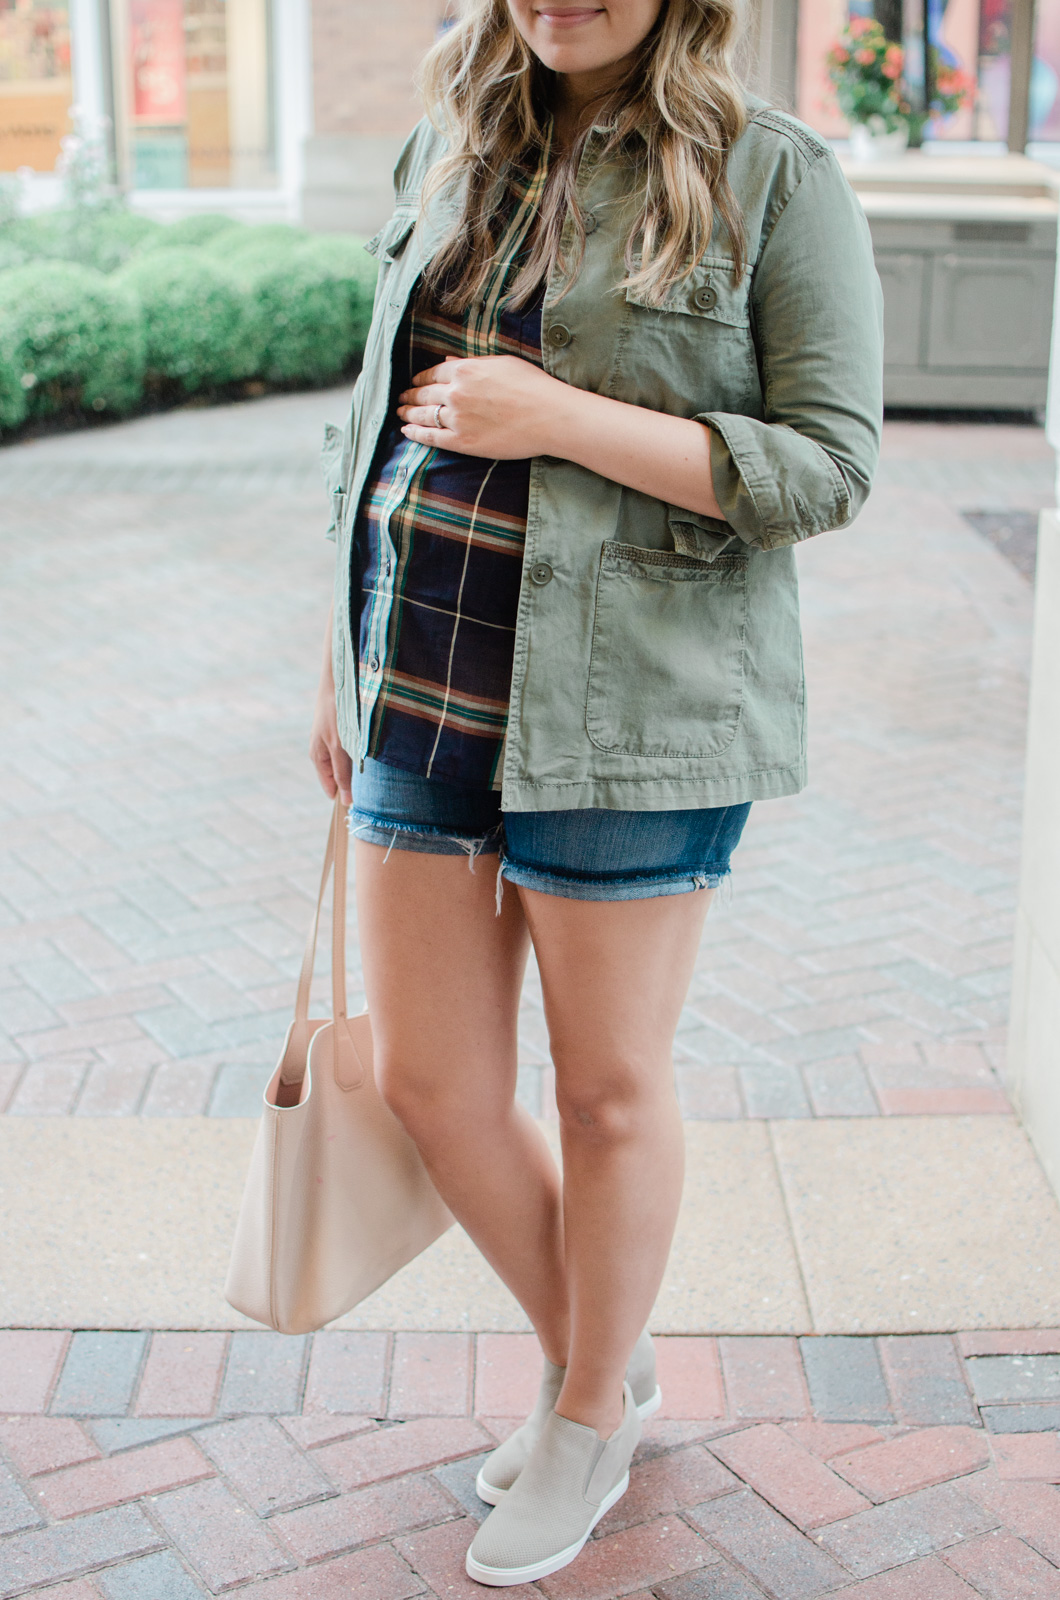 early fall maternity style - the perfect fall transition bump outfit - plaid button down with utility jacket, shorts, and wedge sneakers | bylaurenm.com